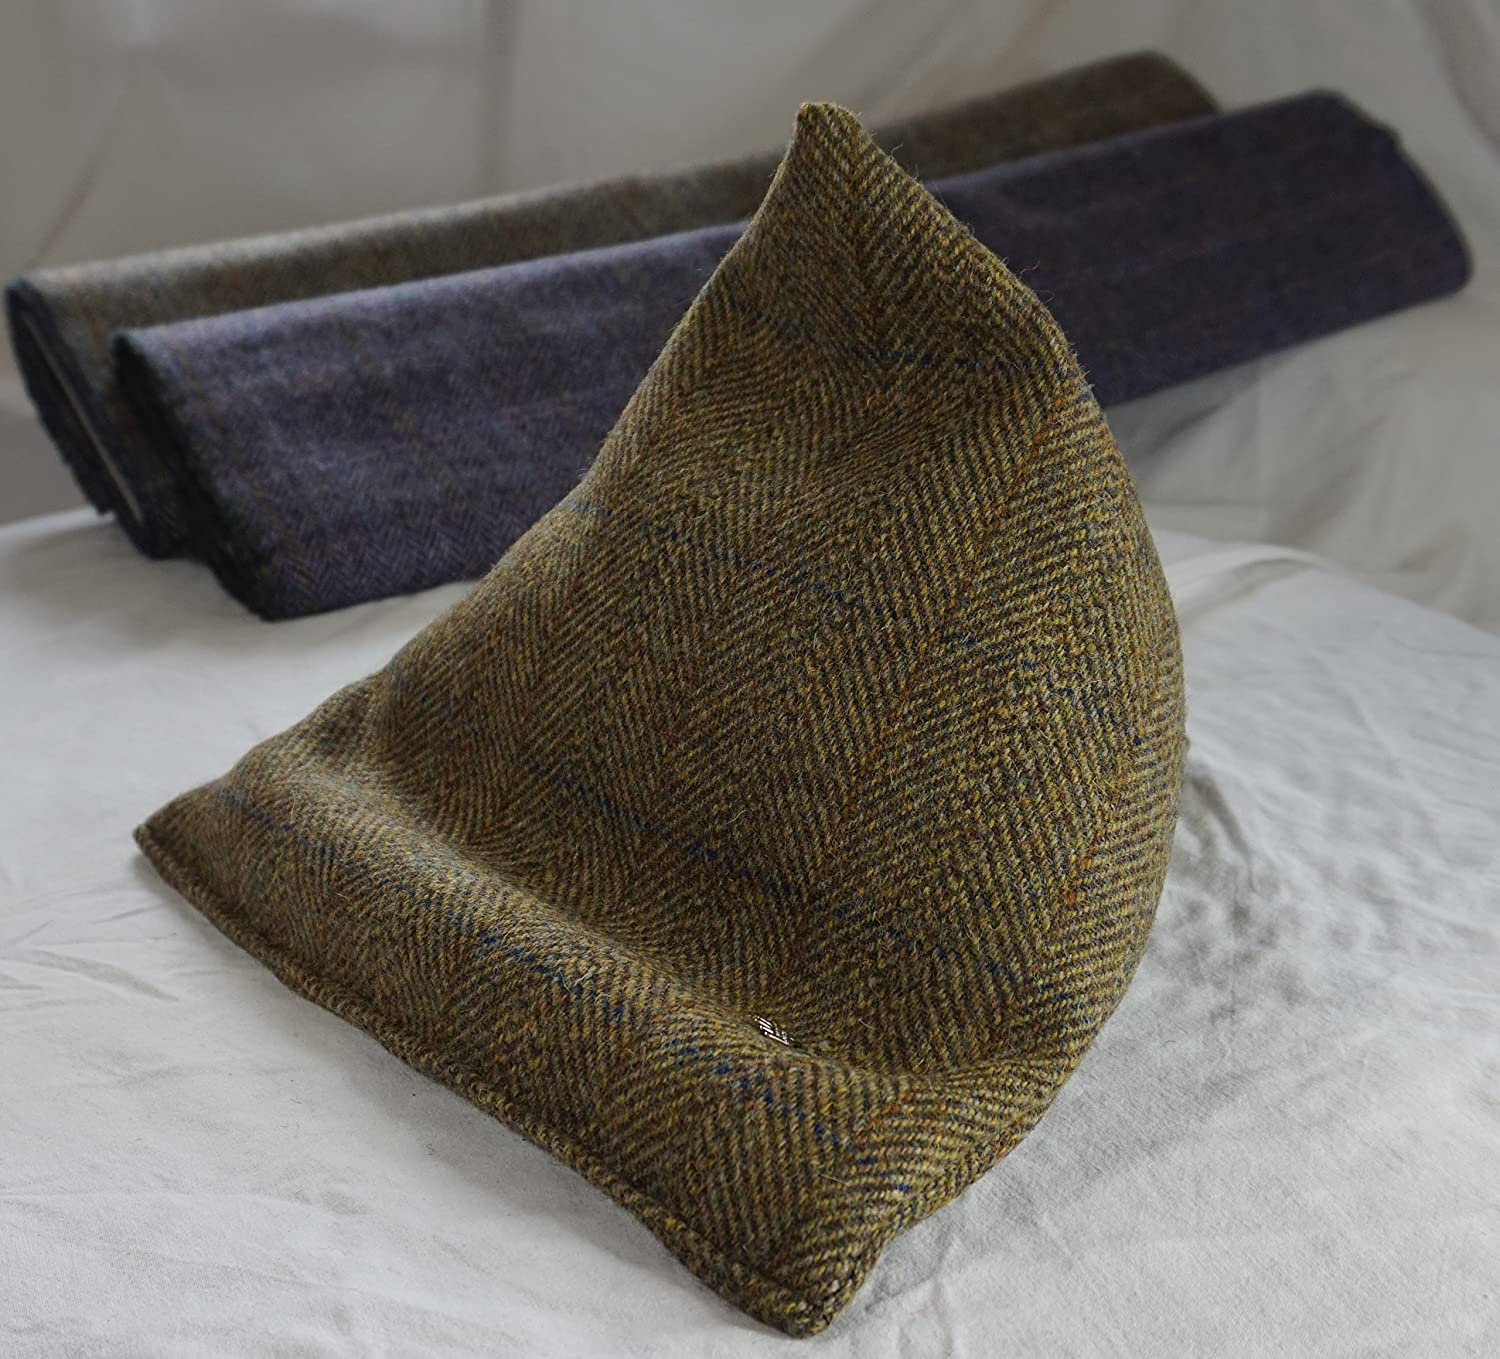 e-book reader Stand 06 .. and sony Z2 Tablet pillow support beanbag Sack ref Tab s2 Authentic Harris Tweed Harris Tweed ipad Bean bag also for samsung Tab s